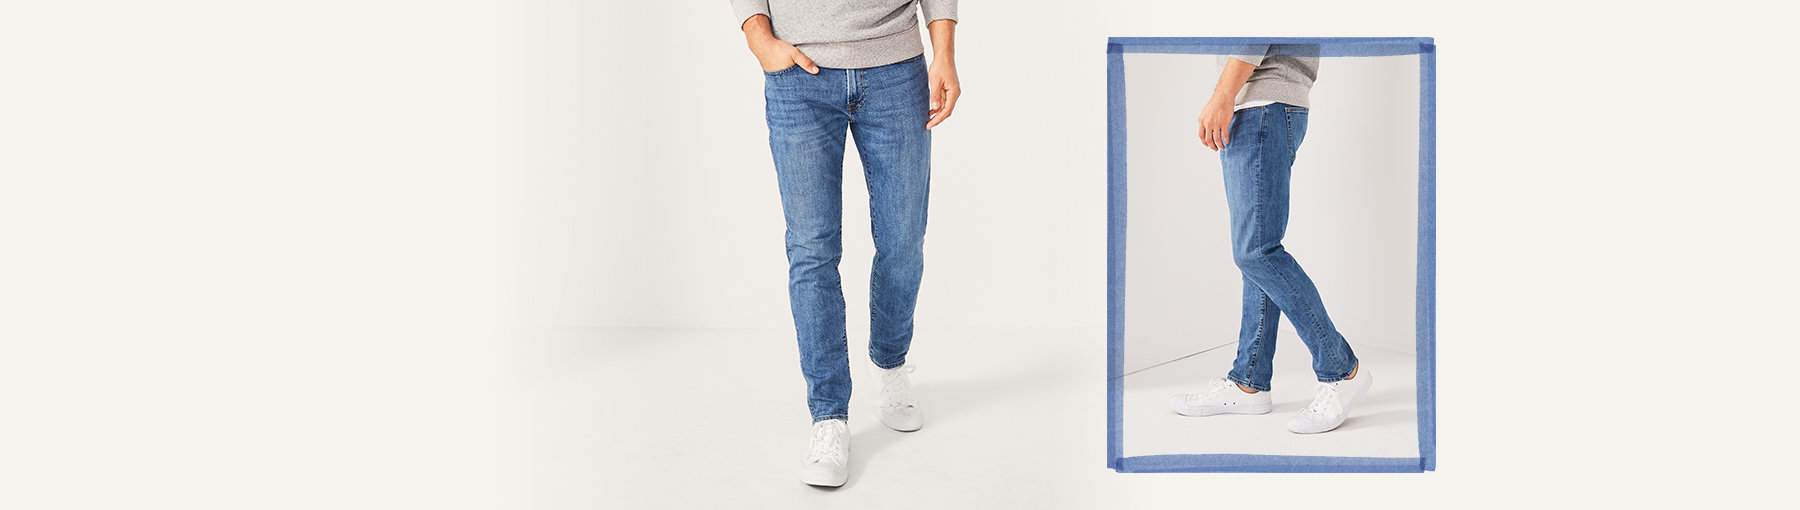 d00f4099 Mens Athletic Skinny Jeans | Abercrombie & Fitch